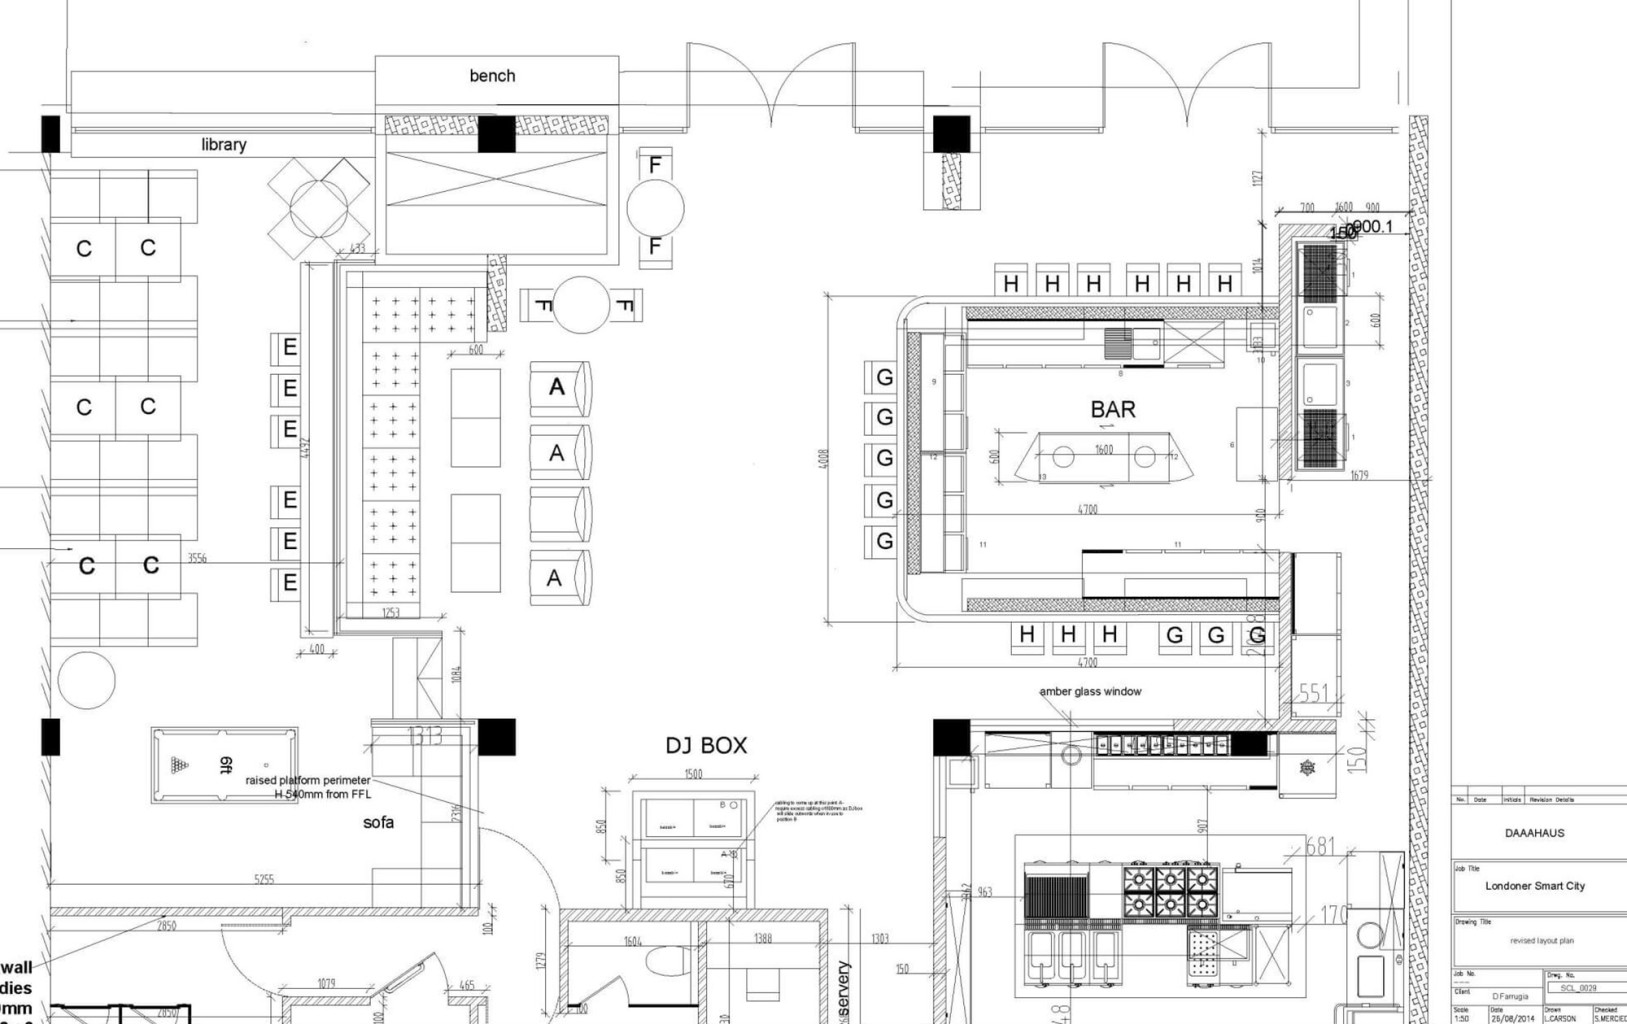 revised-layout-scl-260814-revised-layout-plan-1-50-copia